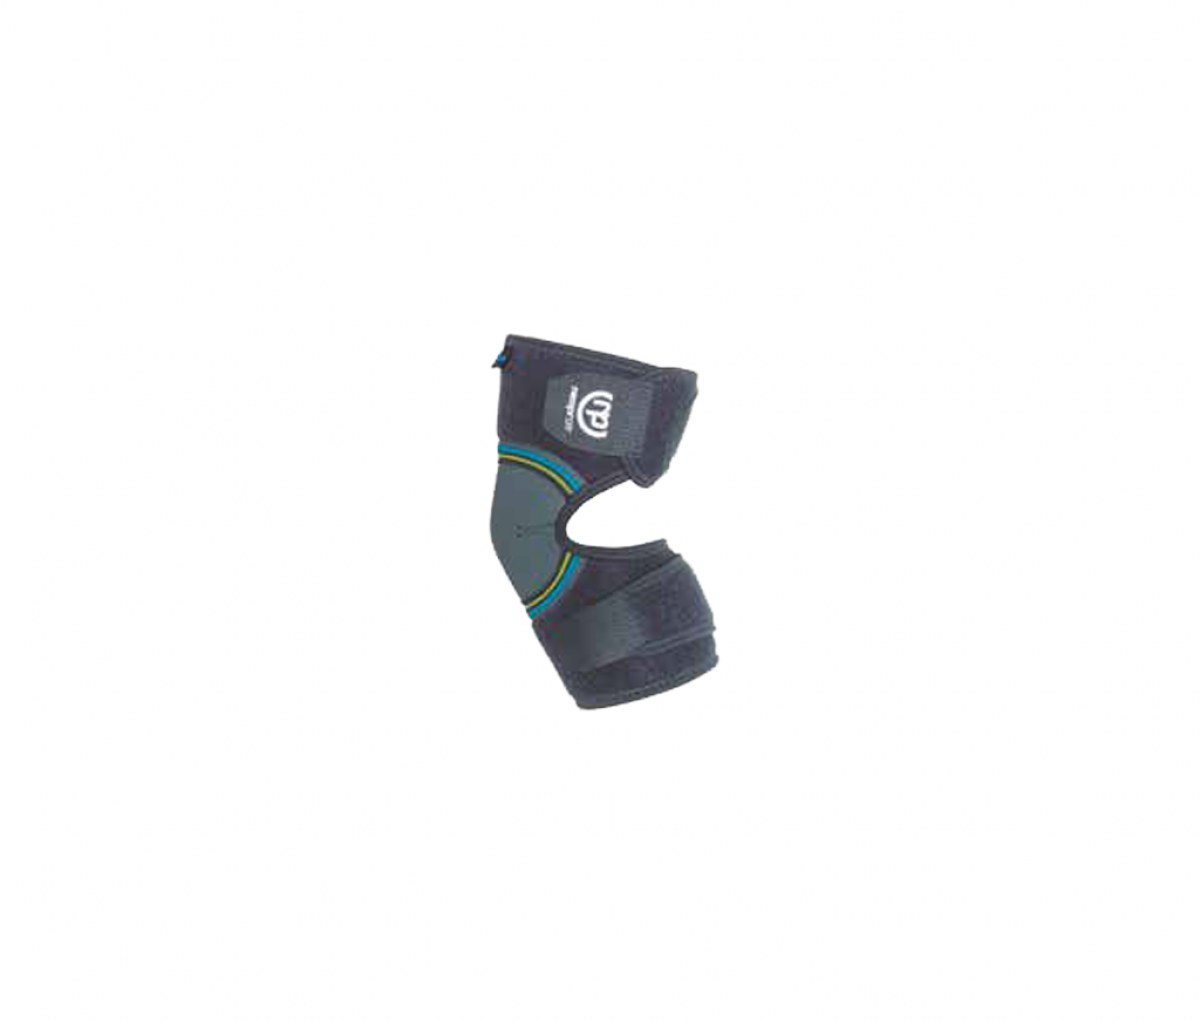 ELBOW SUPPORT - Free Size NPOS173